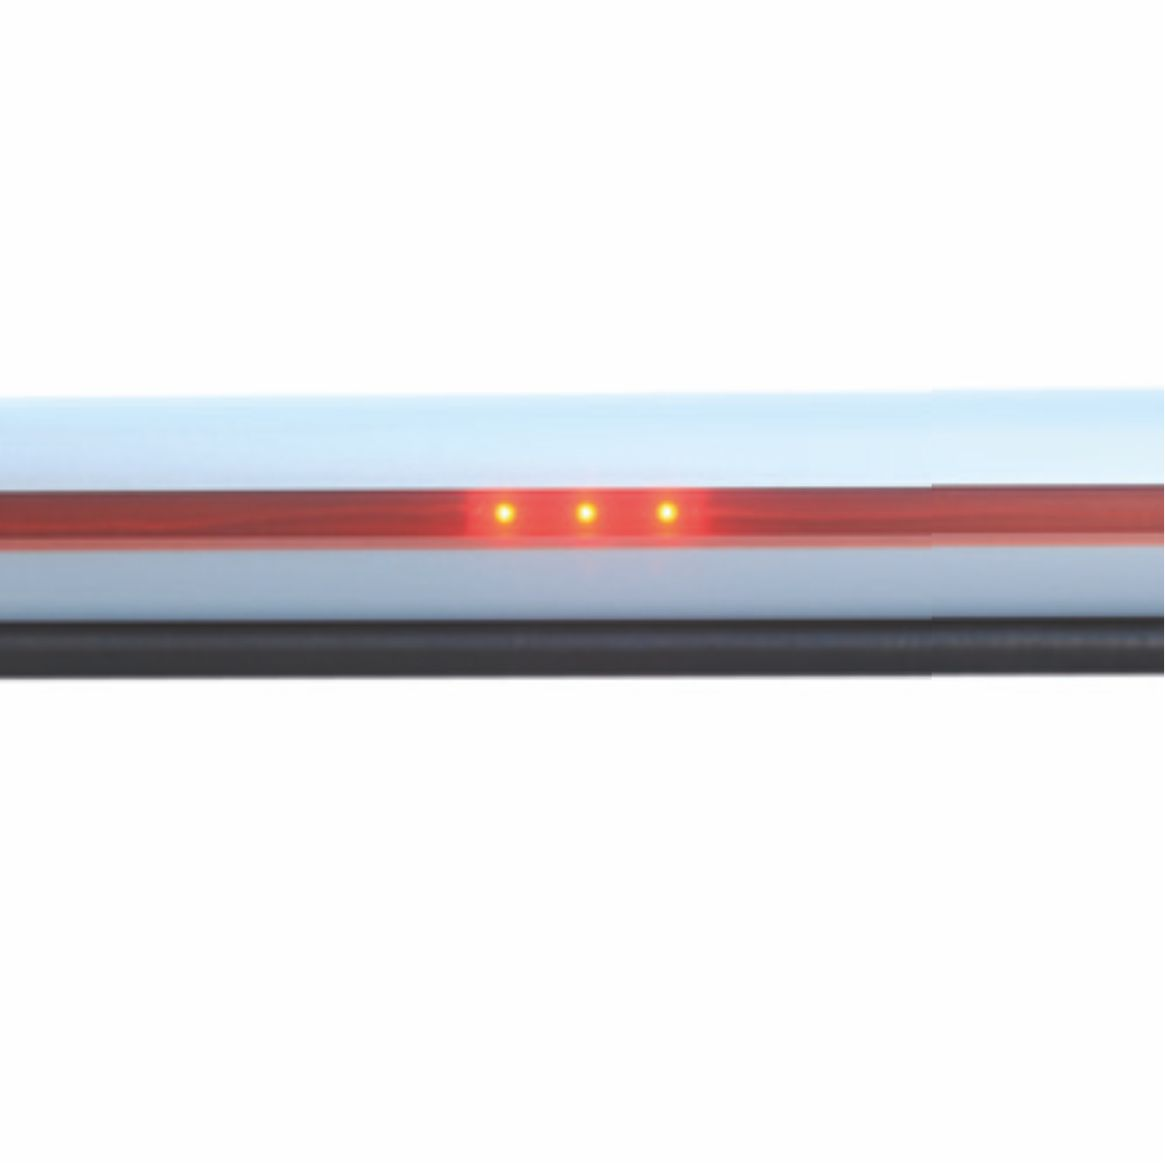 electromechanical boom lighting details red line white